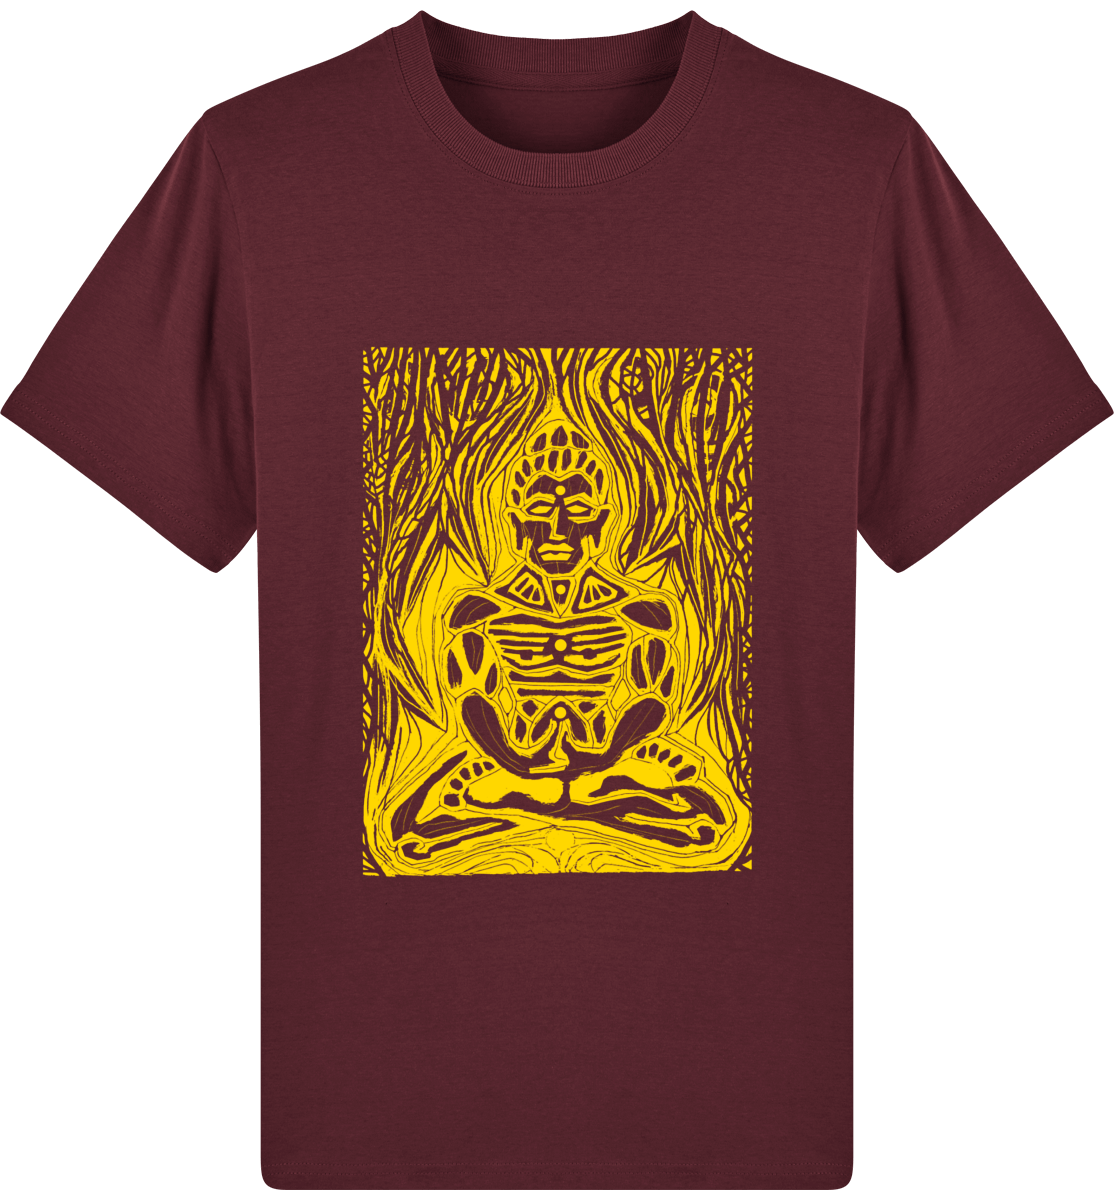 "Tee-shirt homme ""BURNING SHIVA"" - coton bio - ORIGINAL DARKSIDE"